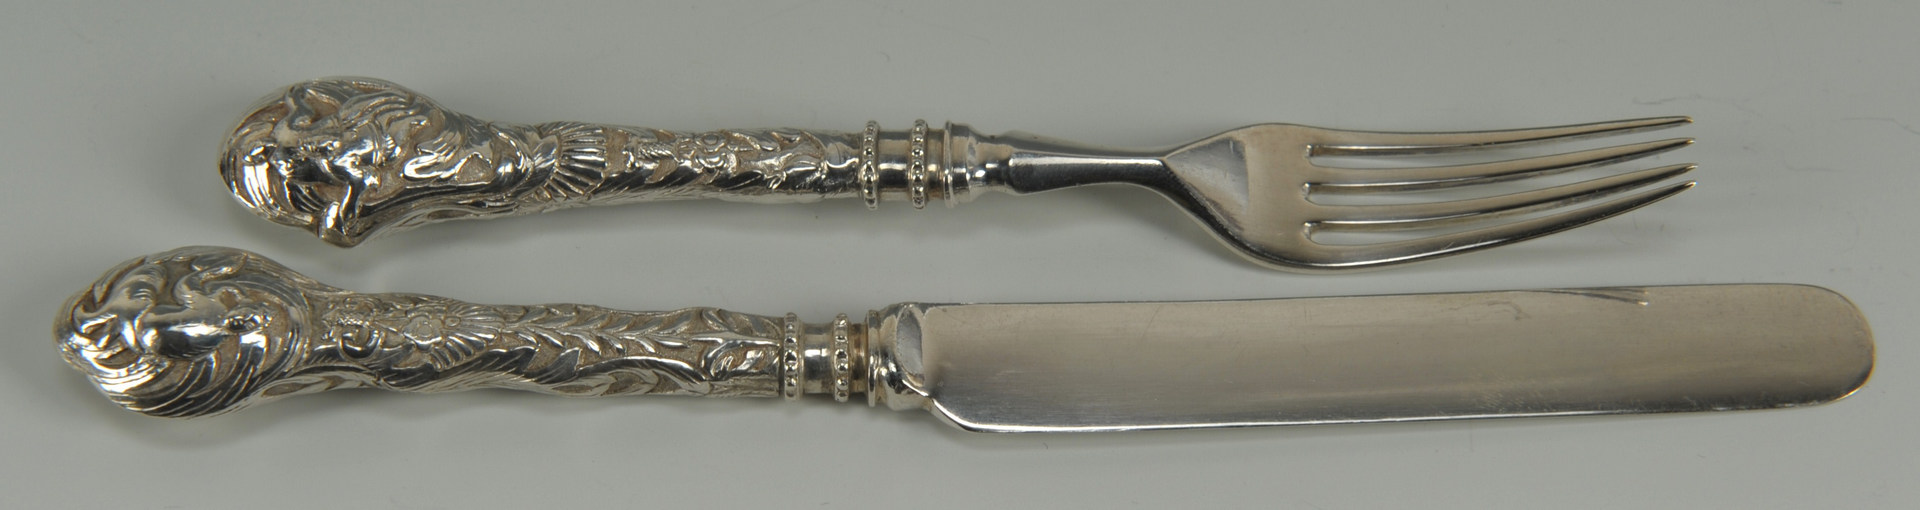 Lot 2: Chinese Export Silver Forks and Knifes, 24 pcs.